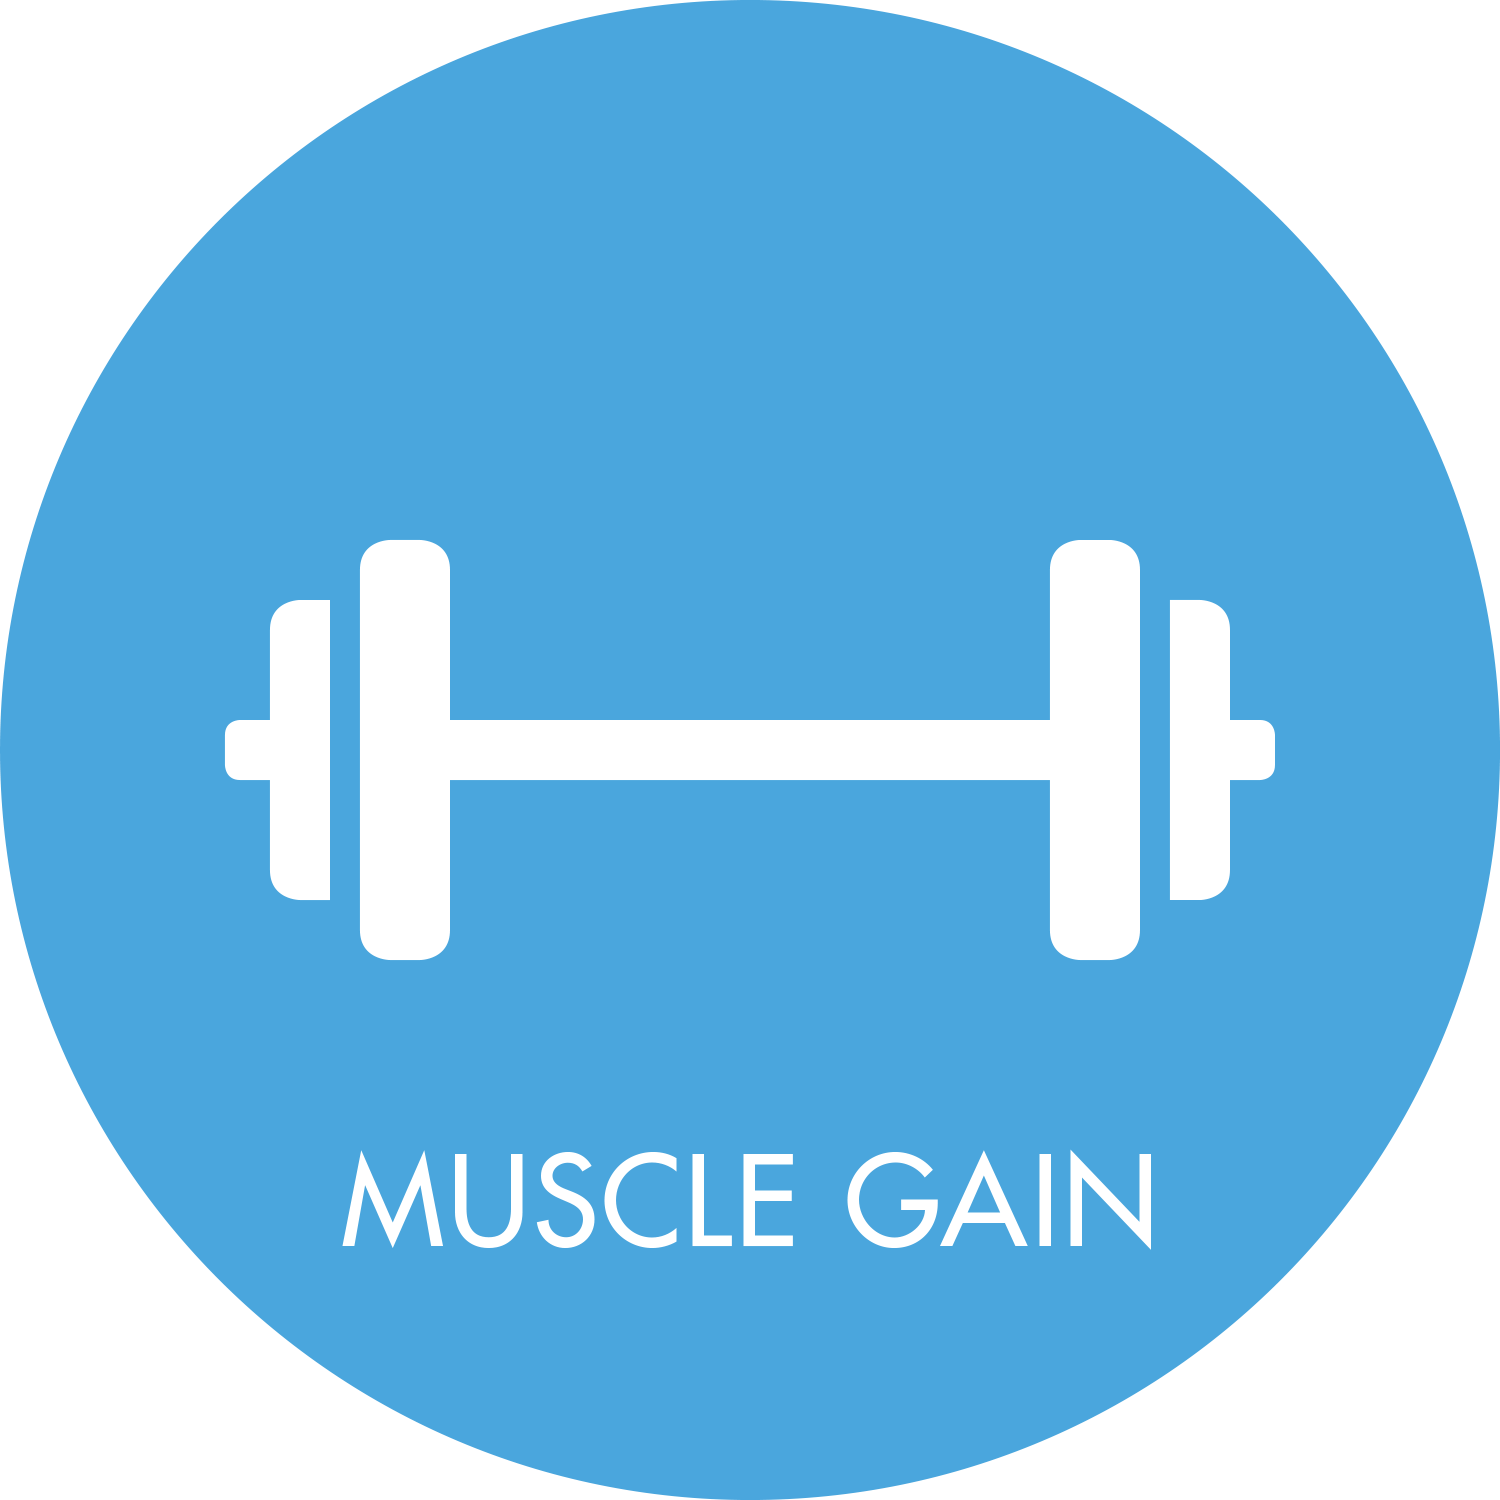 muscle gain, bodybuilding, fitness, weight gain, muscle